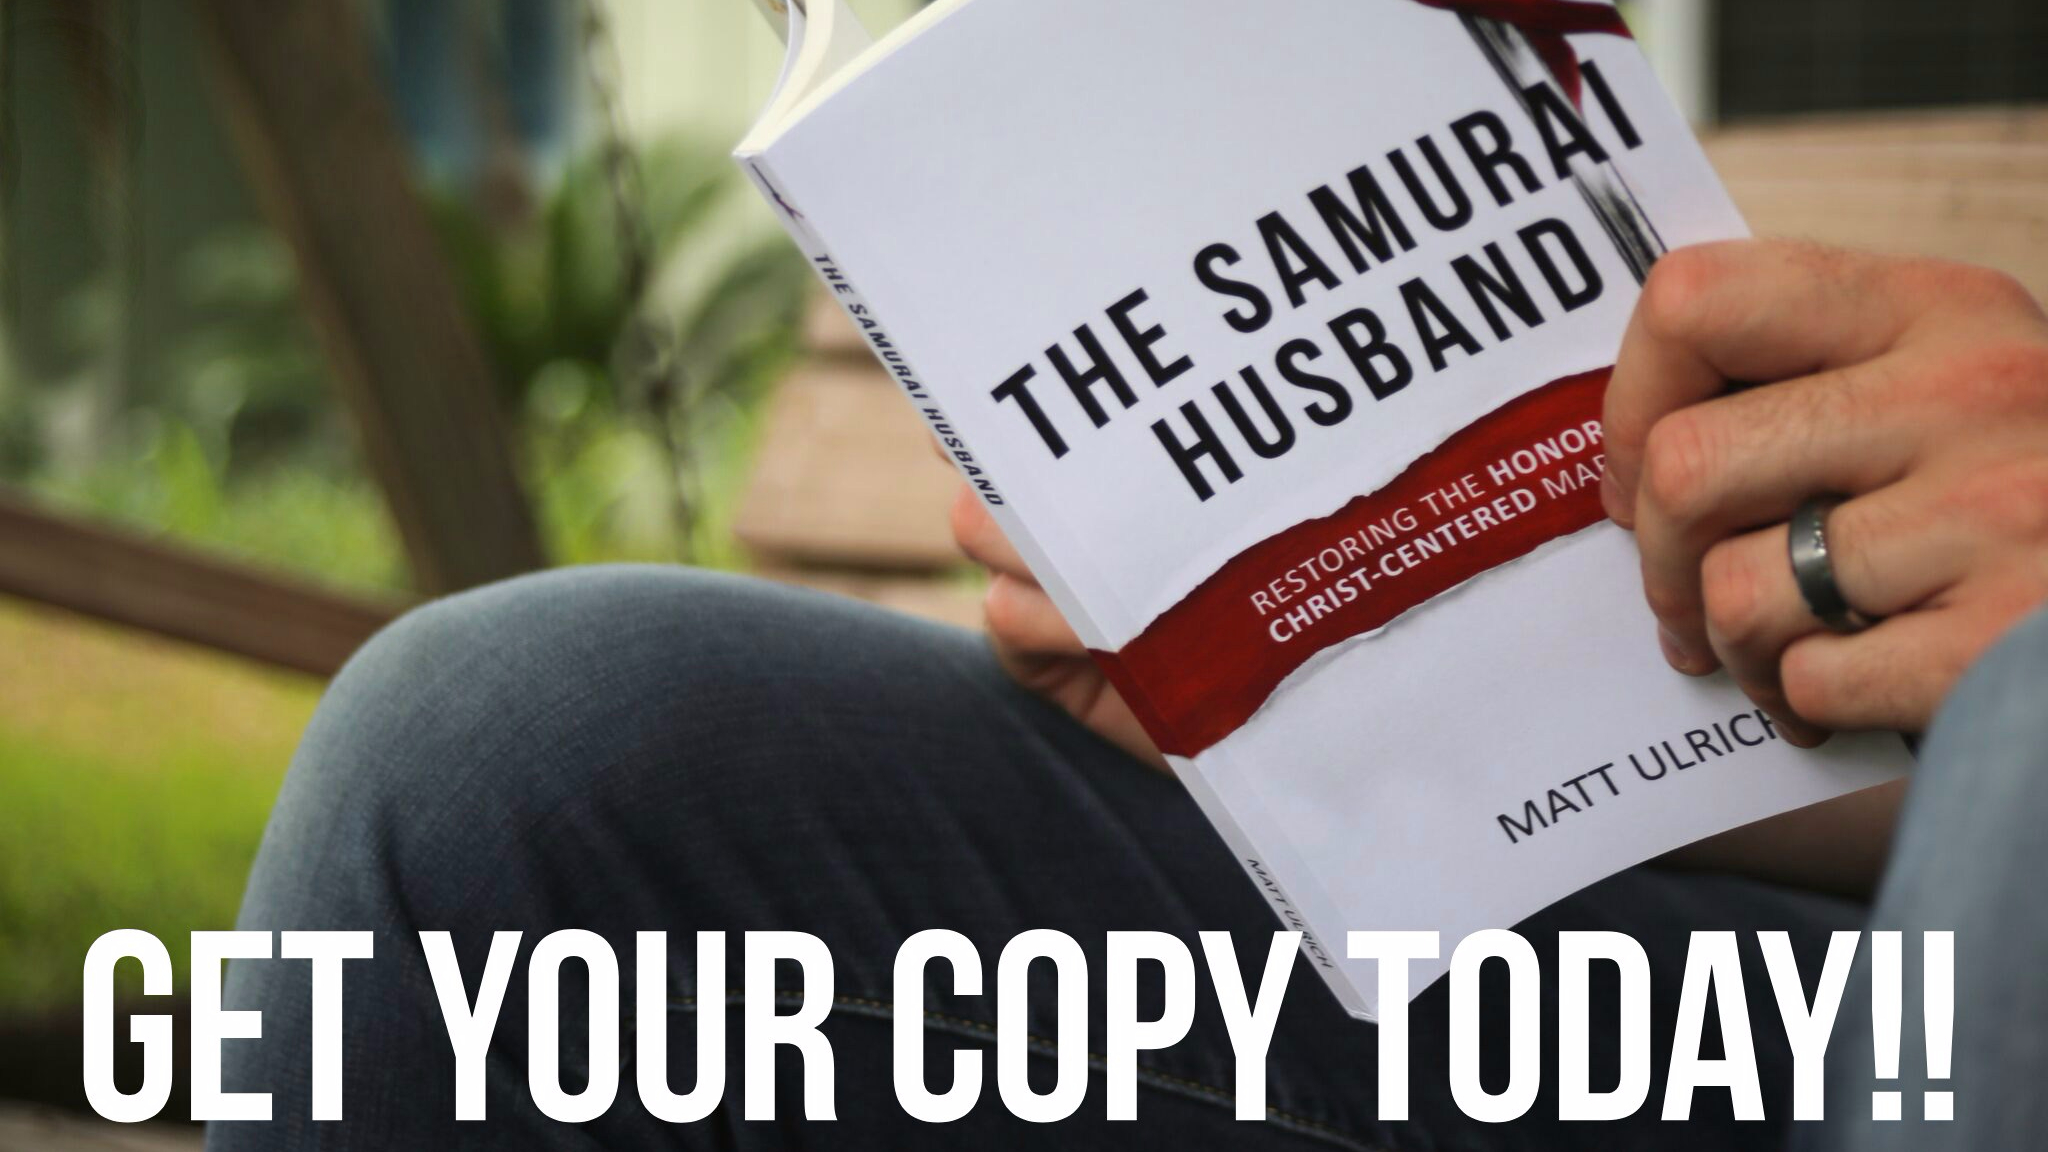 The Samurai Husband Book Now Available